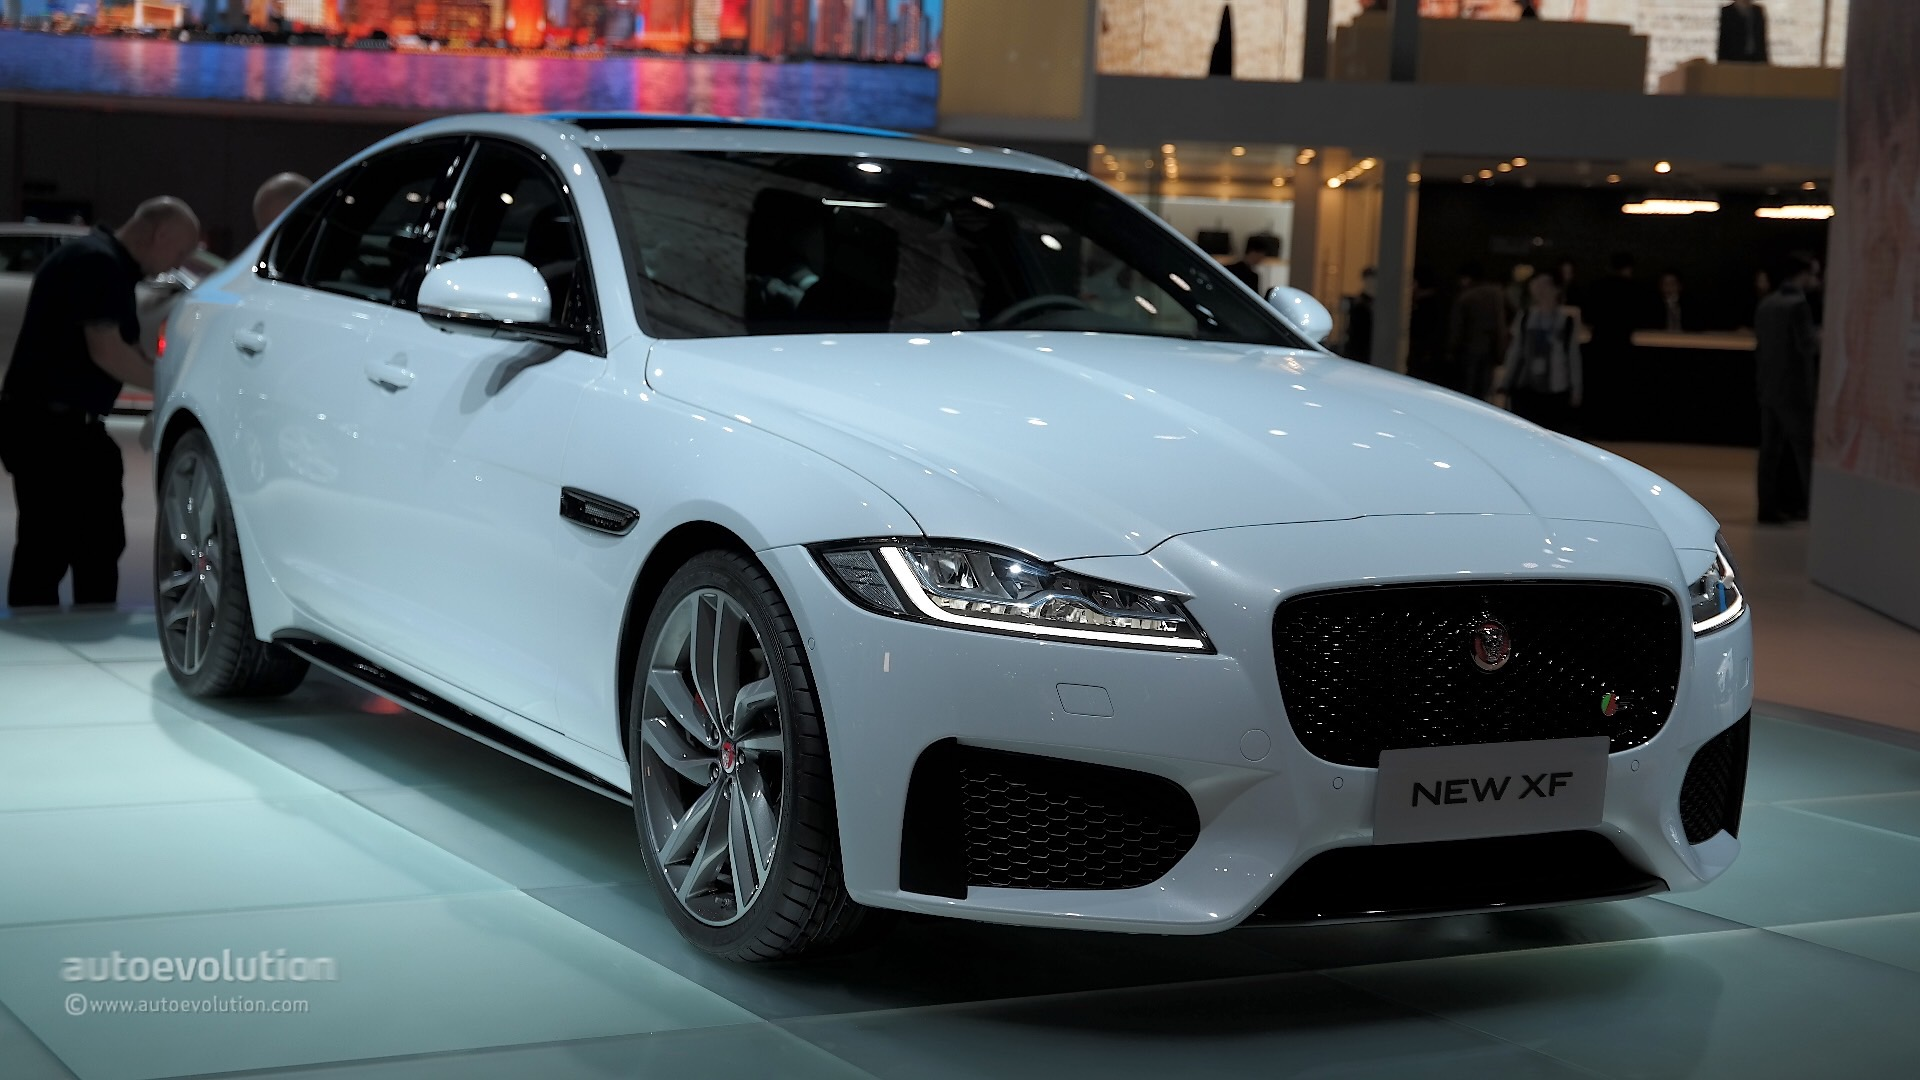 Jaguar Xf Claims A Piece Of The Chinese Auto Market In